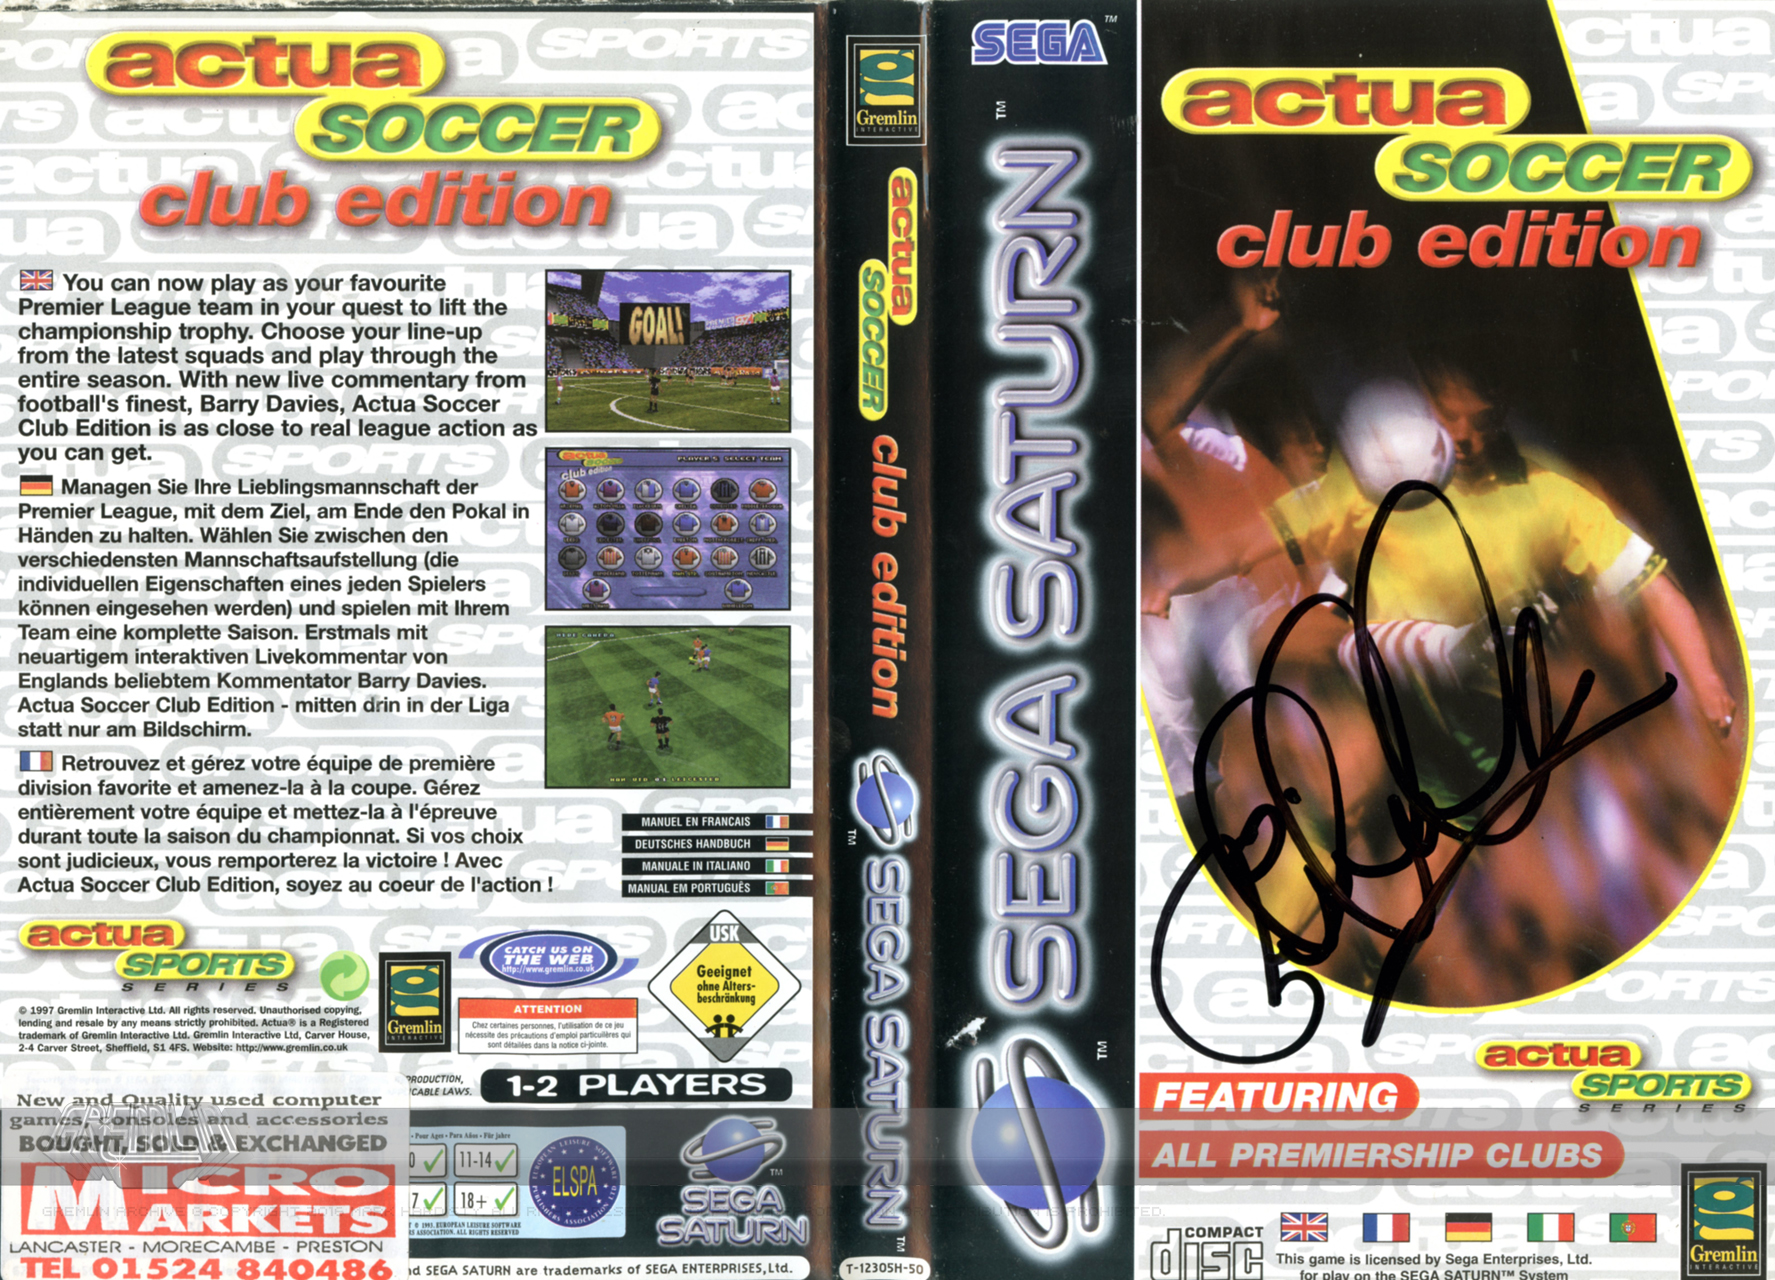 Actua Soccer: Club Edition (Saturn, Signed)